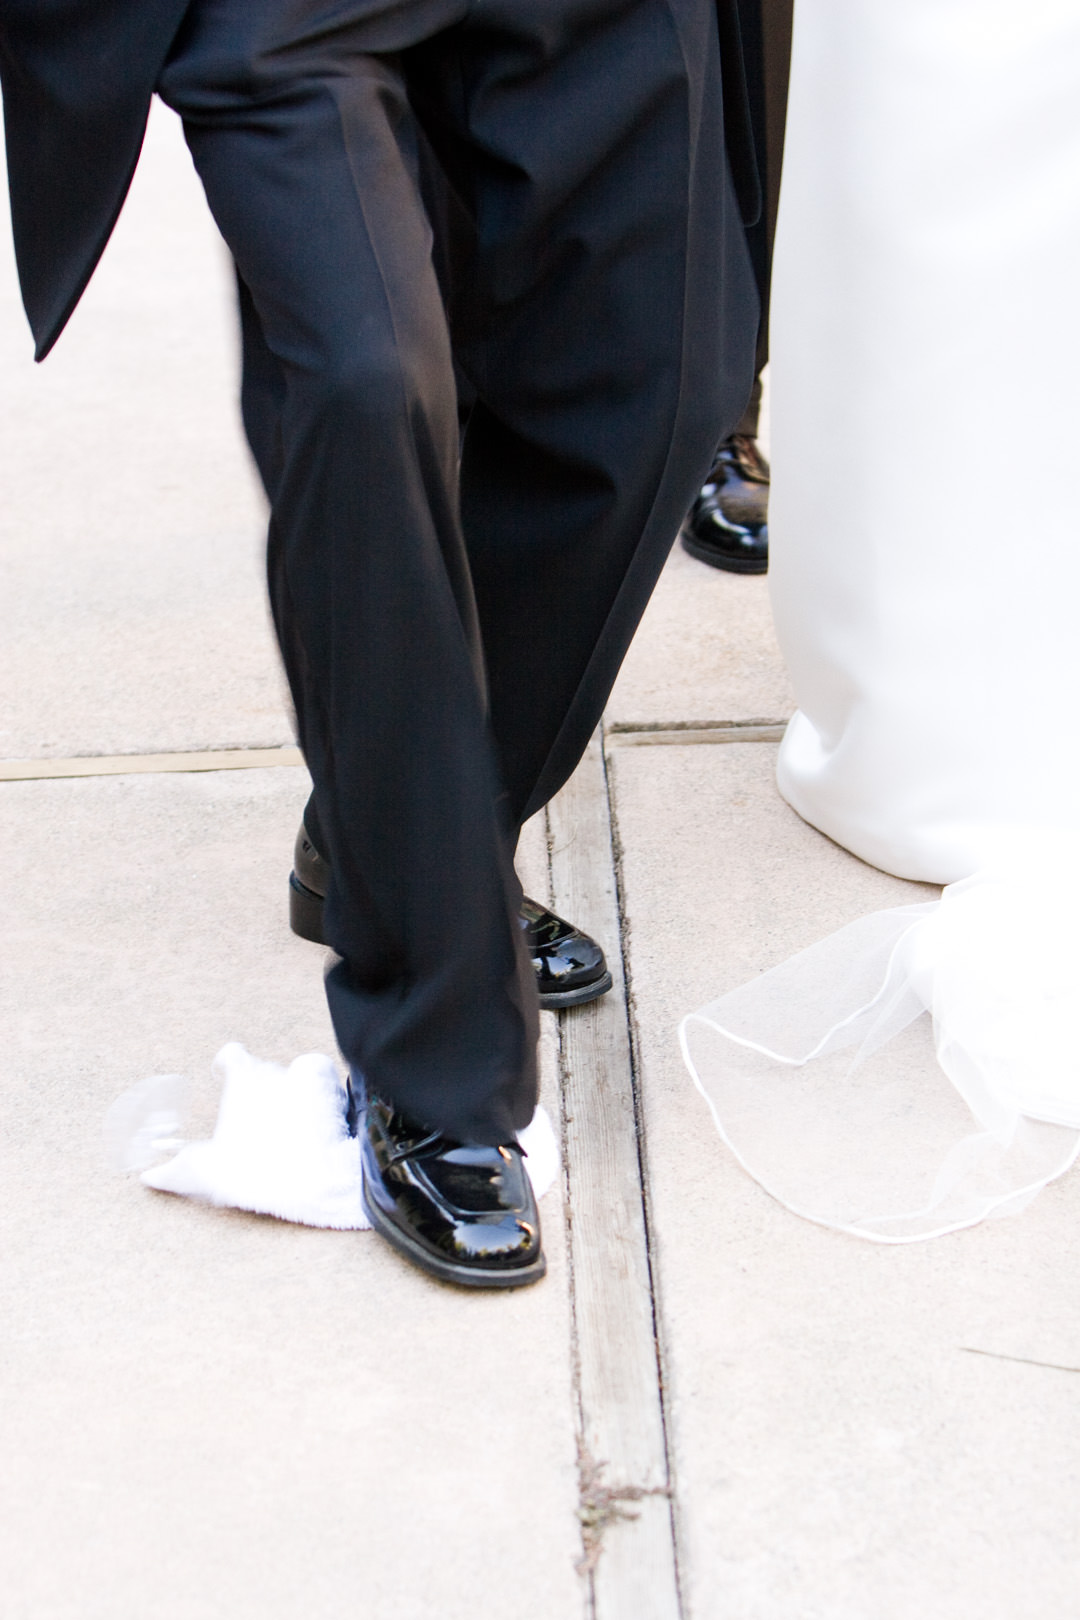 Groom stomps the glass at wedding